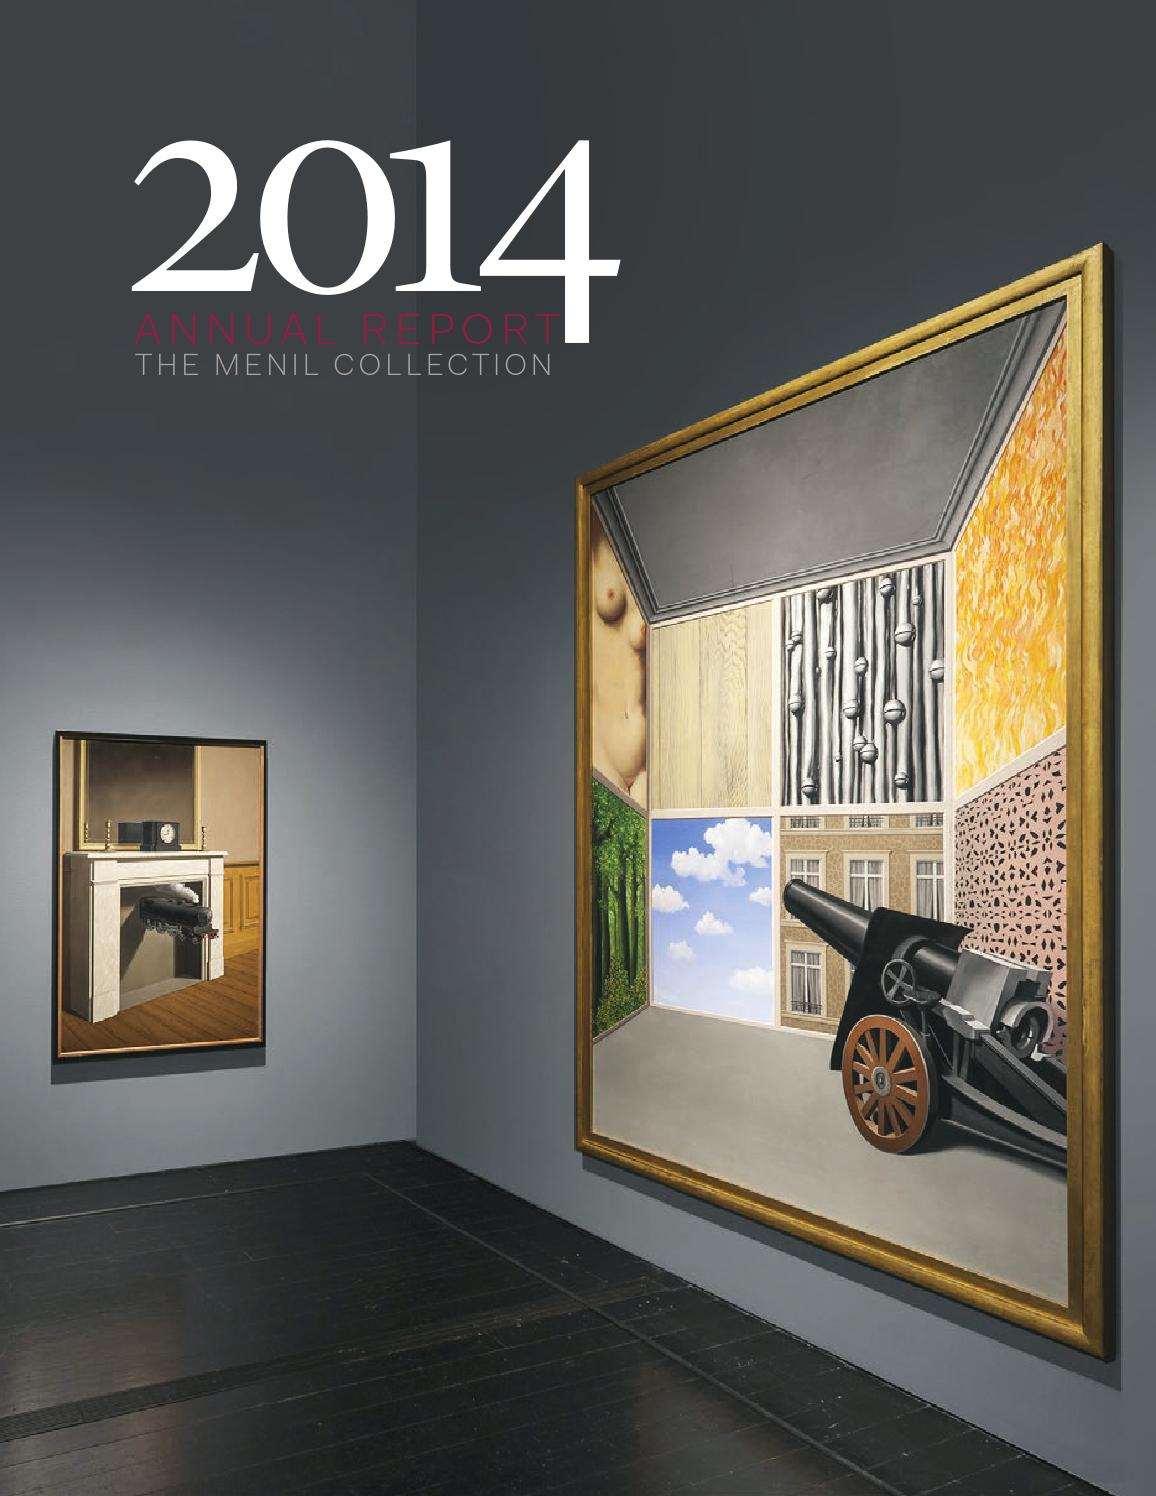 2014 The Menil Collection Annual Report By